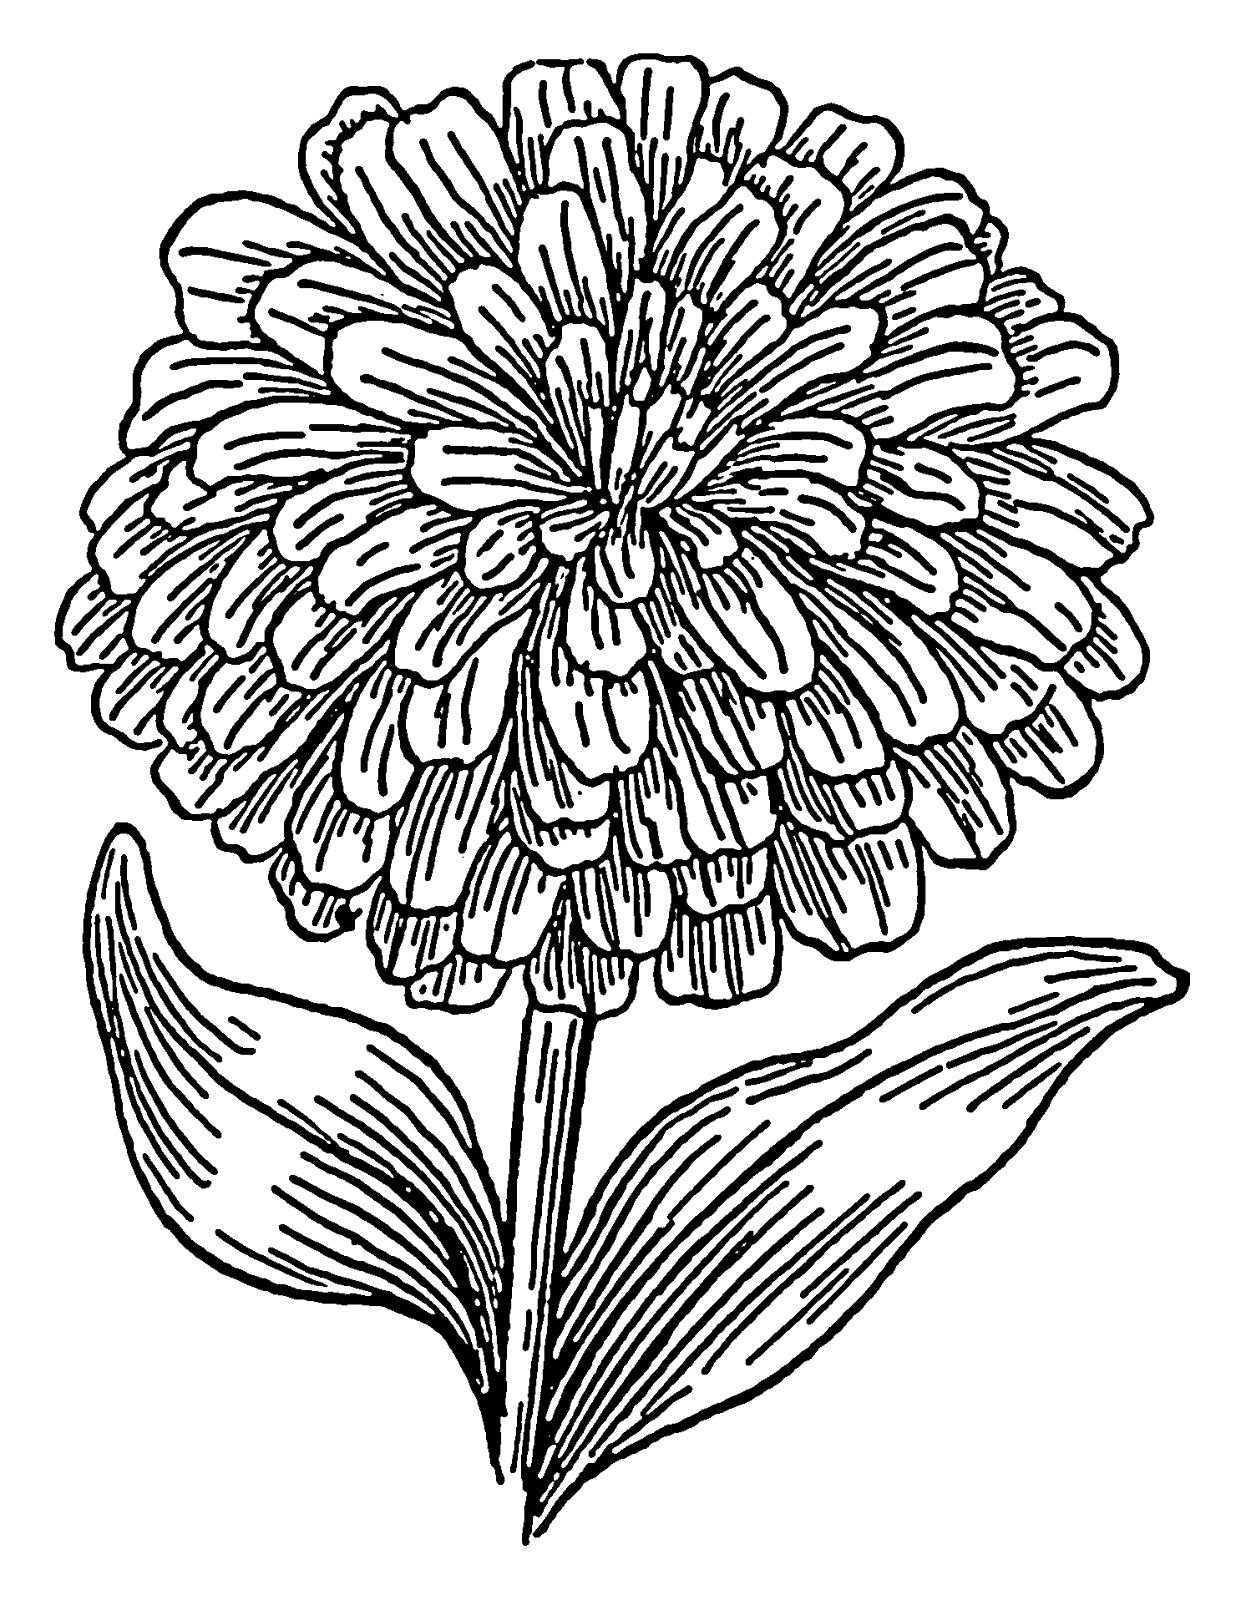 Marigolds outline Tattoos Zinnias Flower coloring